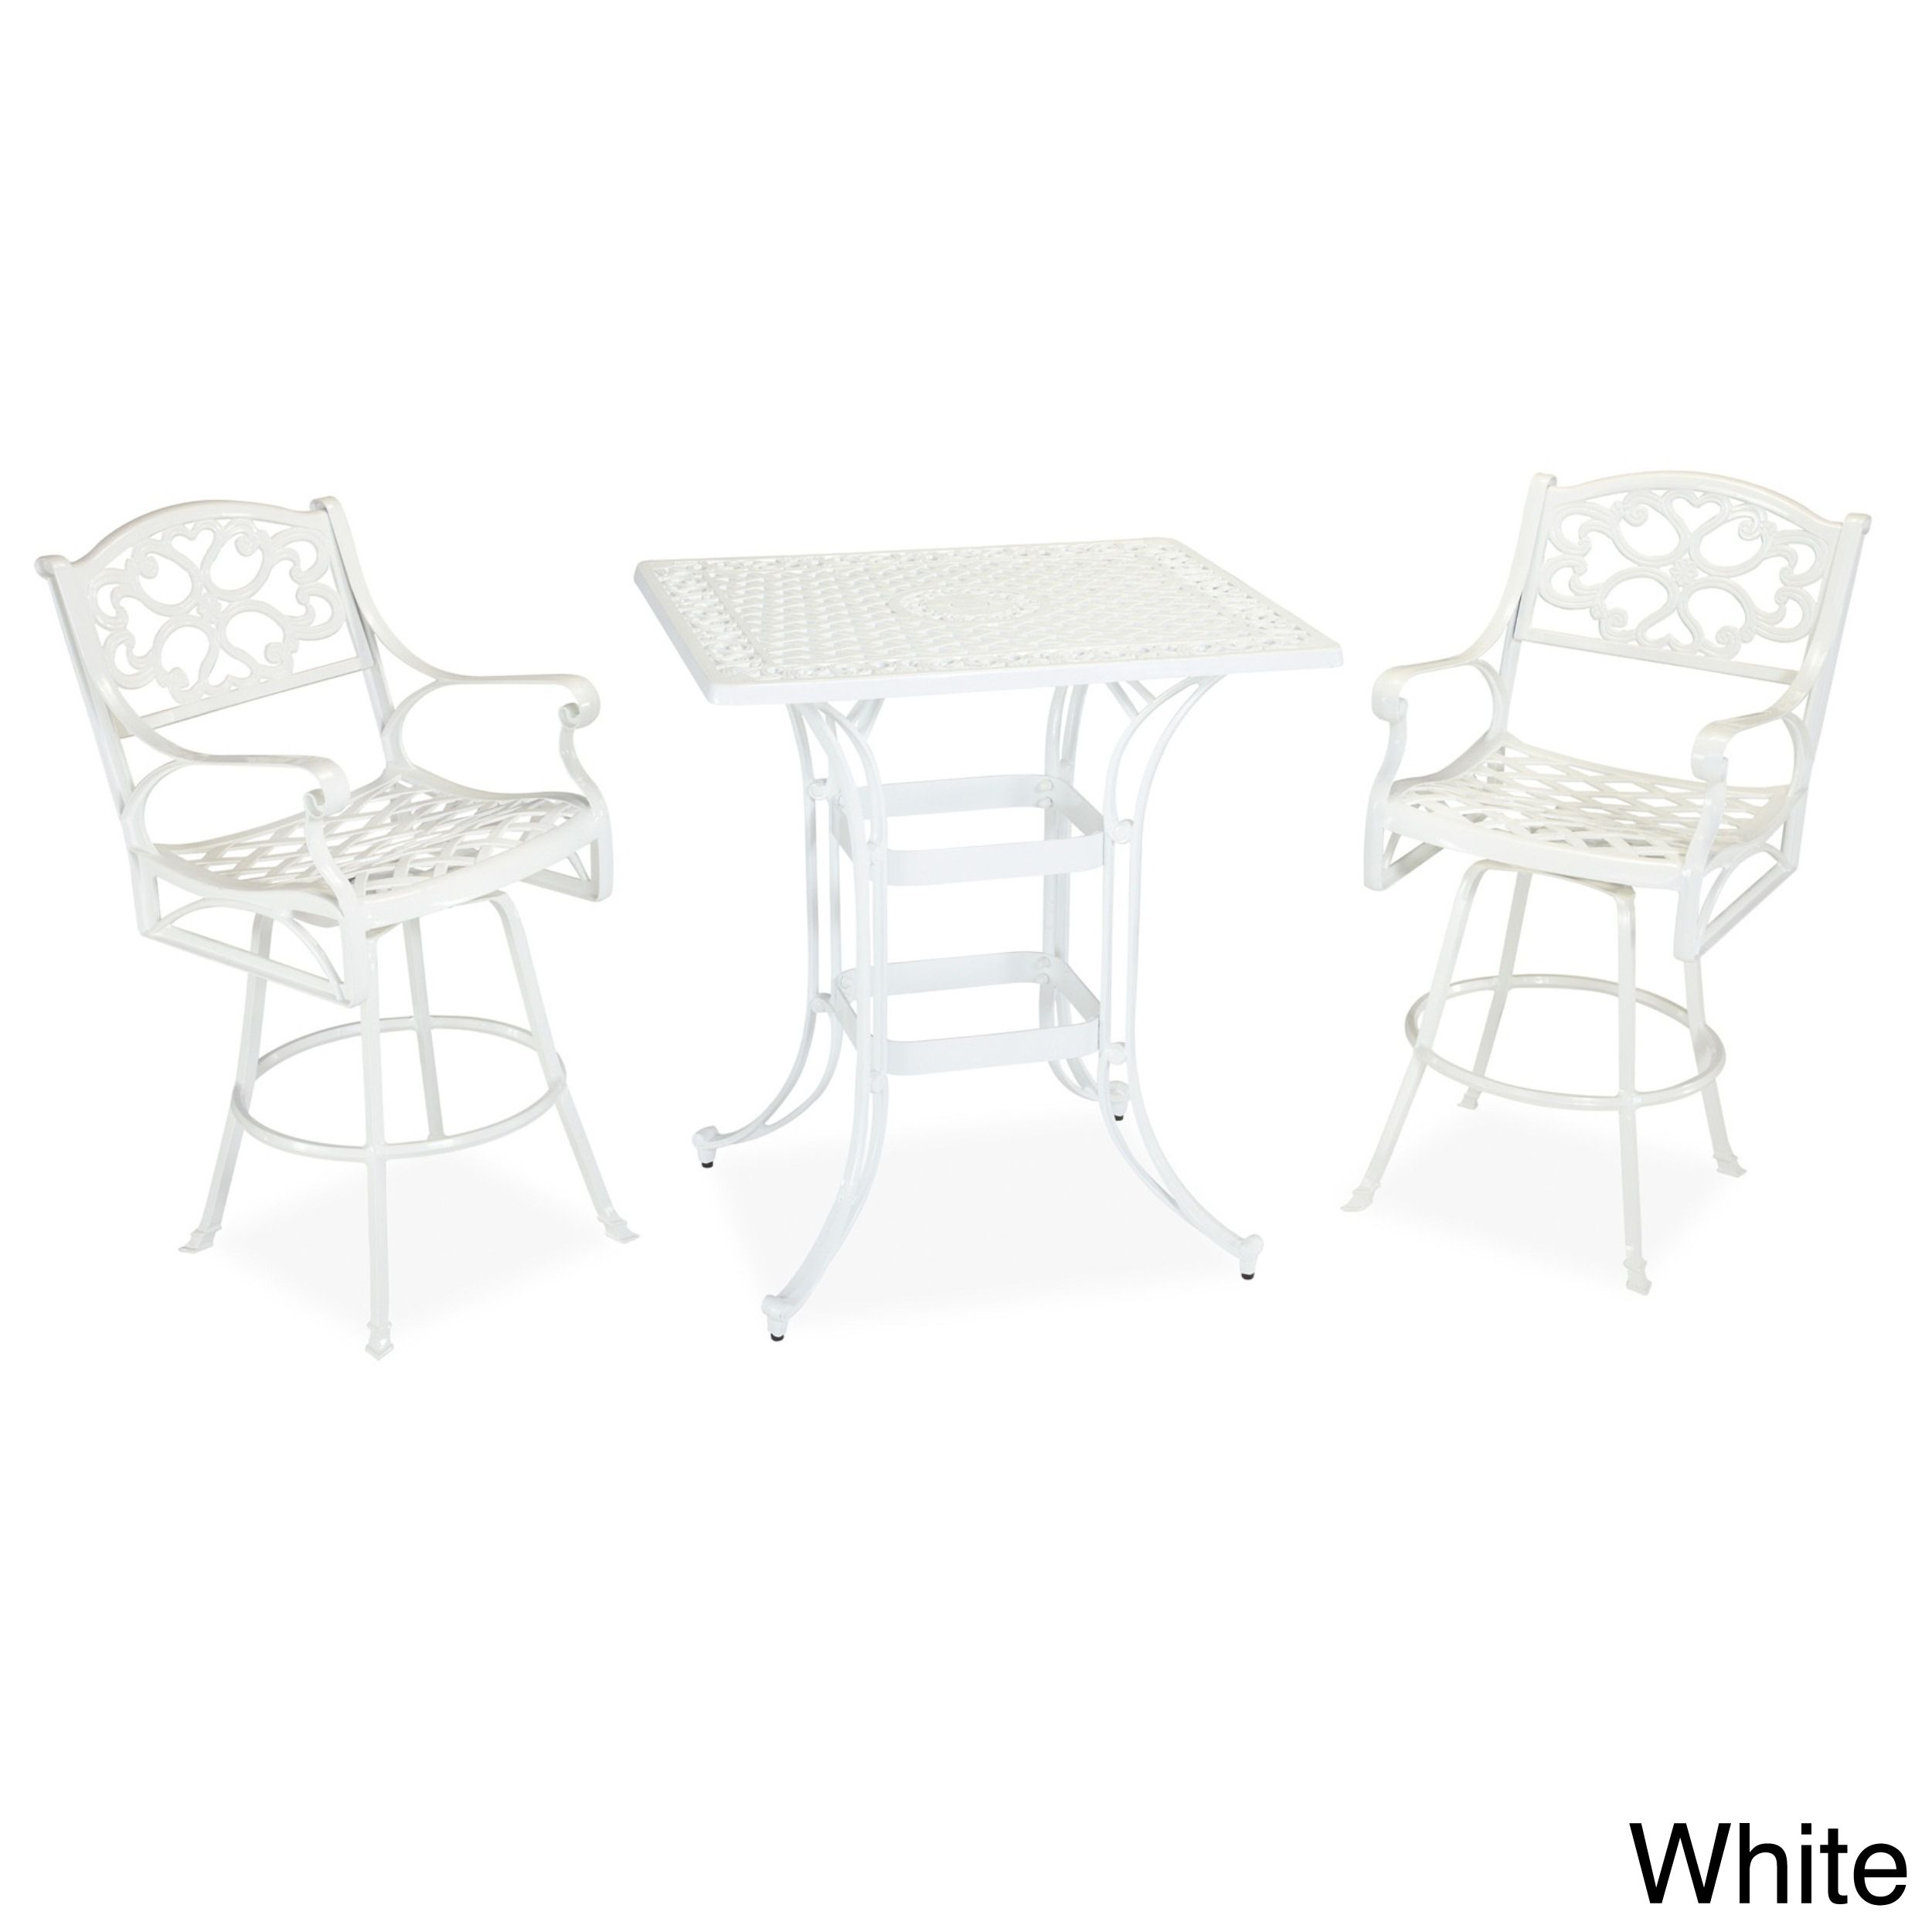 Dine under the stars with this lovely white three-piece bistro set. This ensemble seats two, so you and a guest can linger over after-dinner conversation and contemplate your garden. Sturdy construction and UV protection ensure long-lasting use.